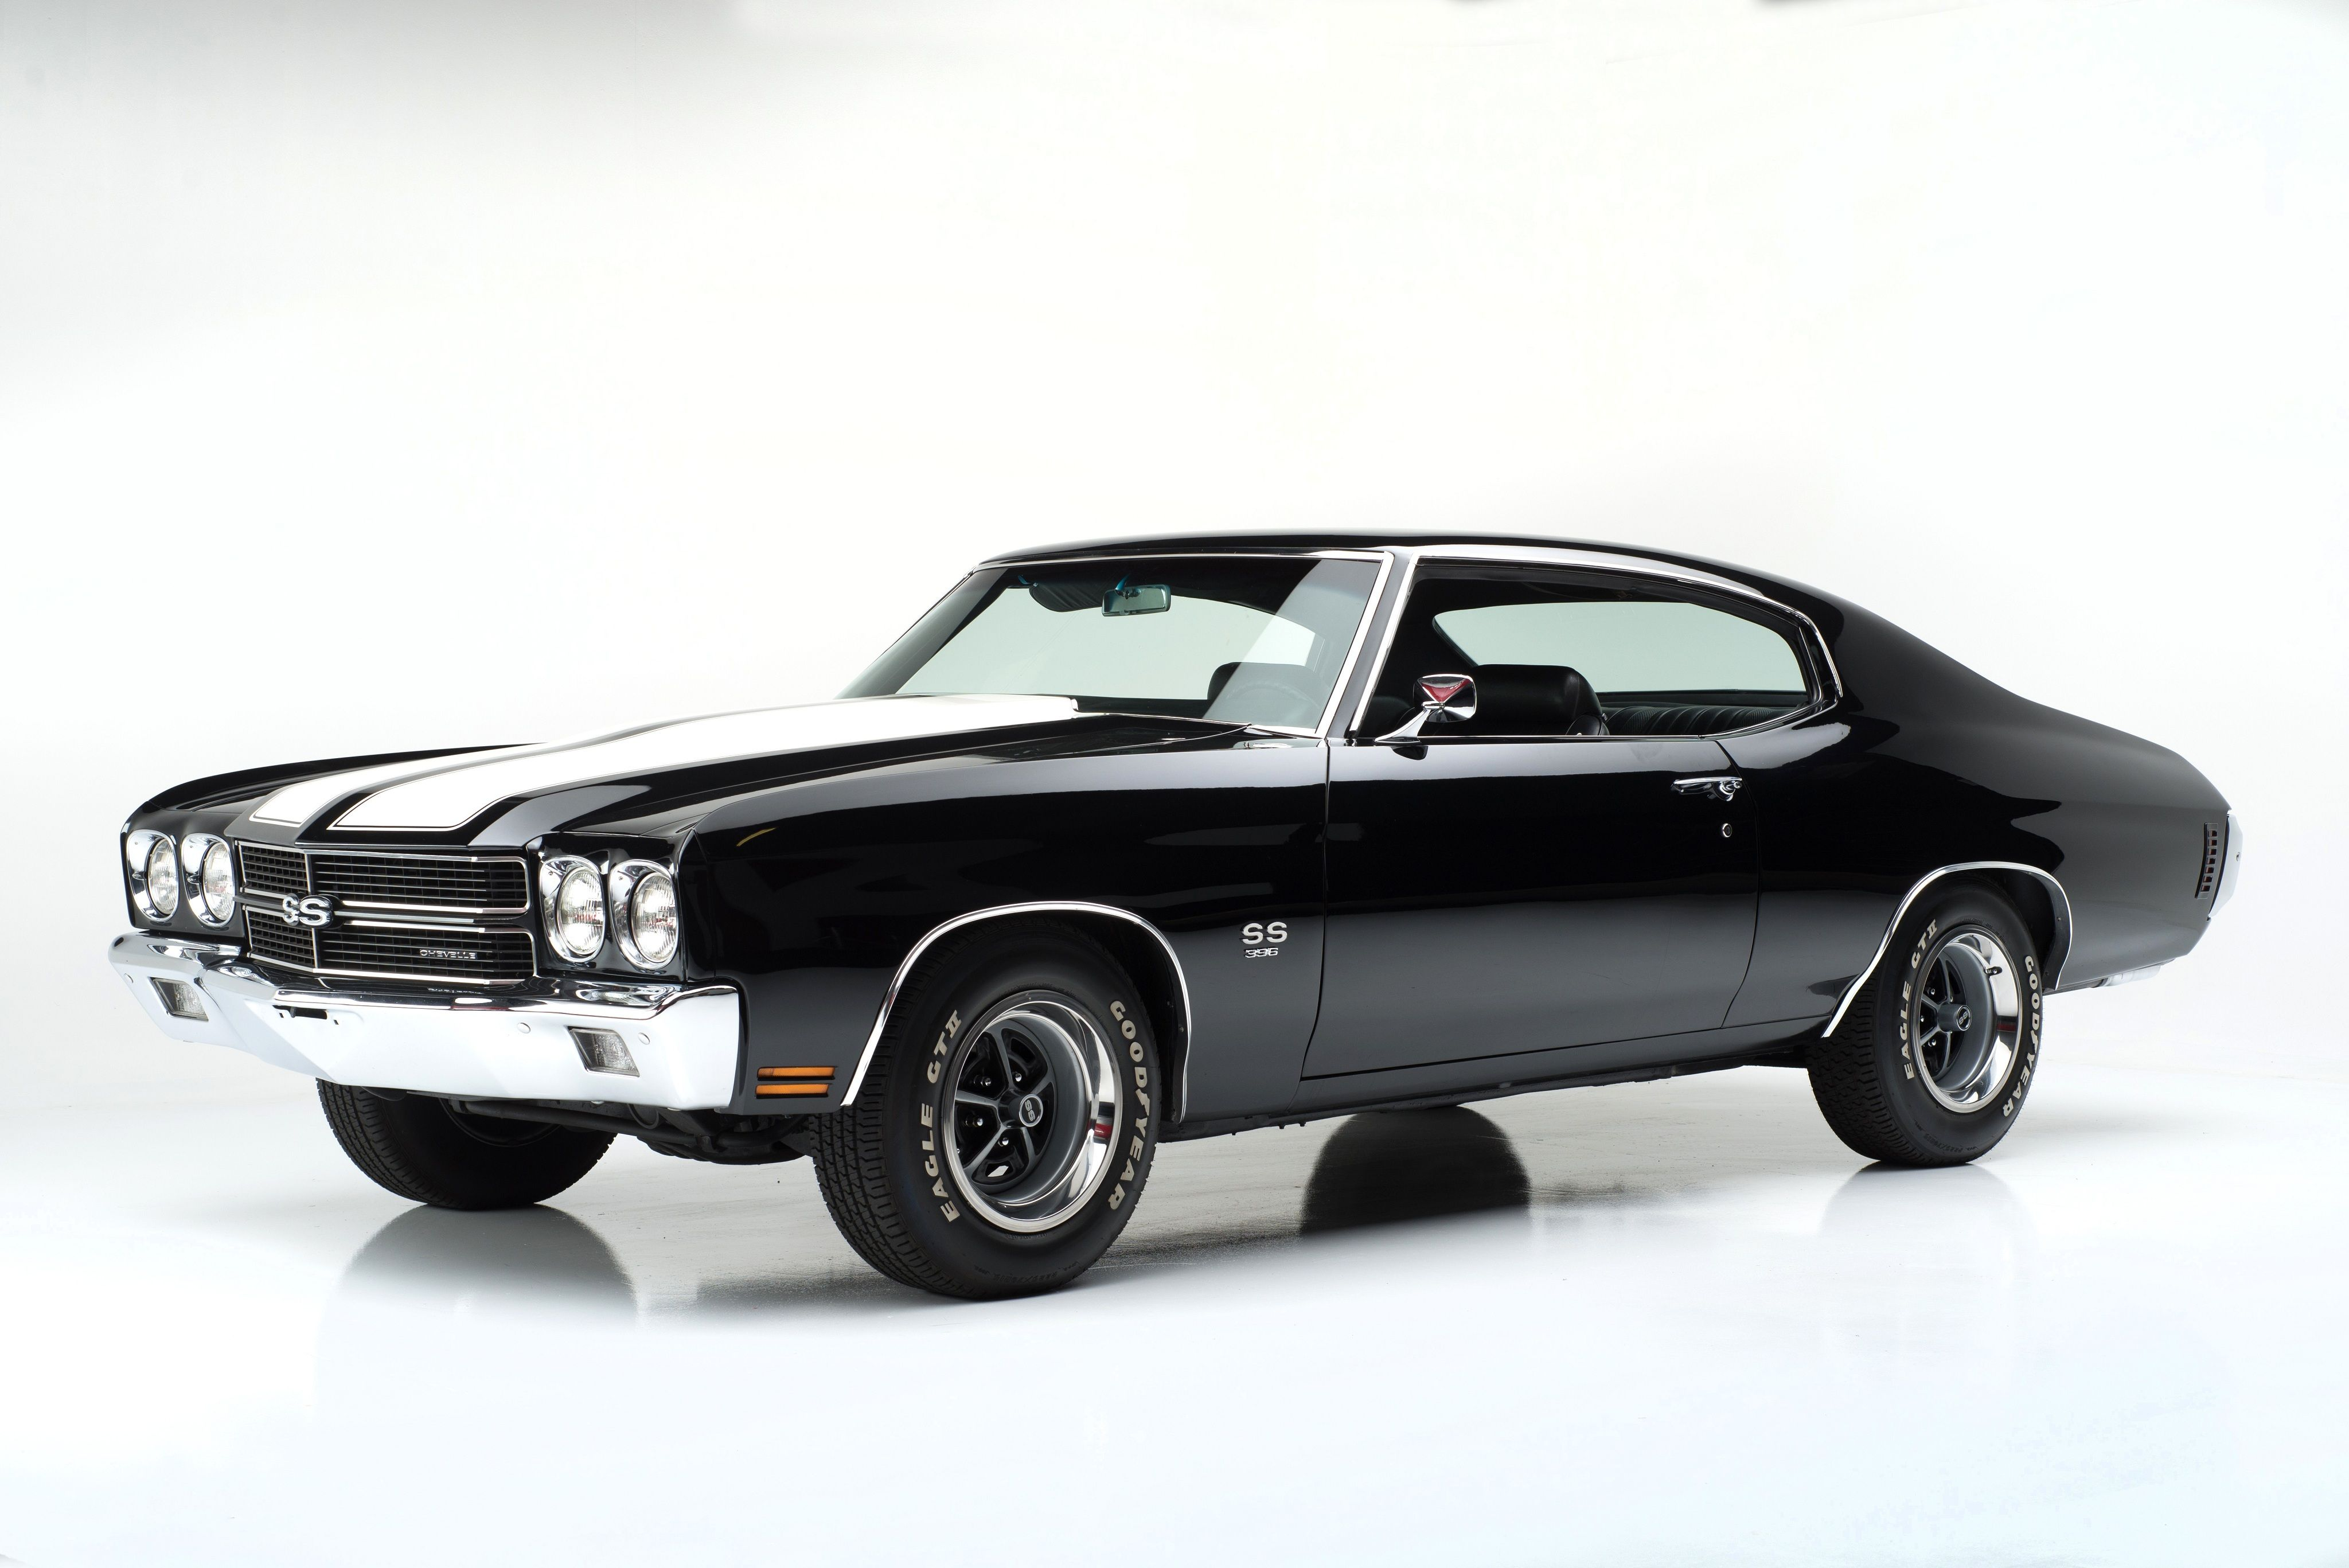 1970 chevrolet chevelle ss 396 hardtop coupe american muscle rh pinterest ca